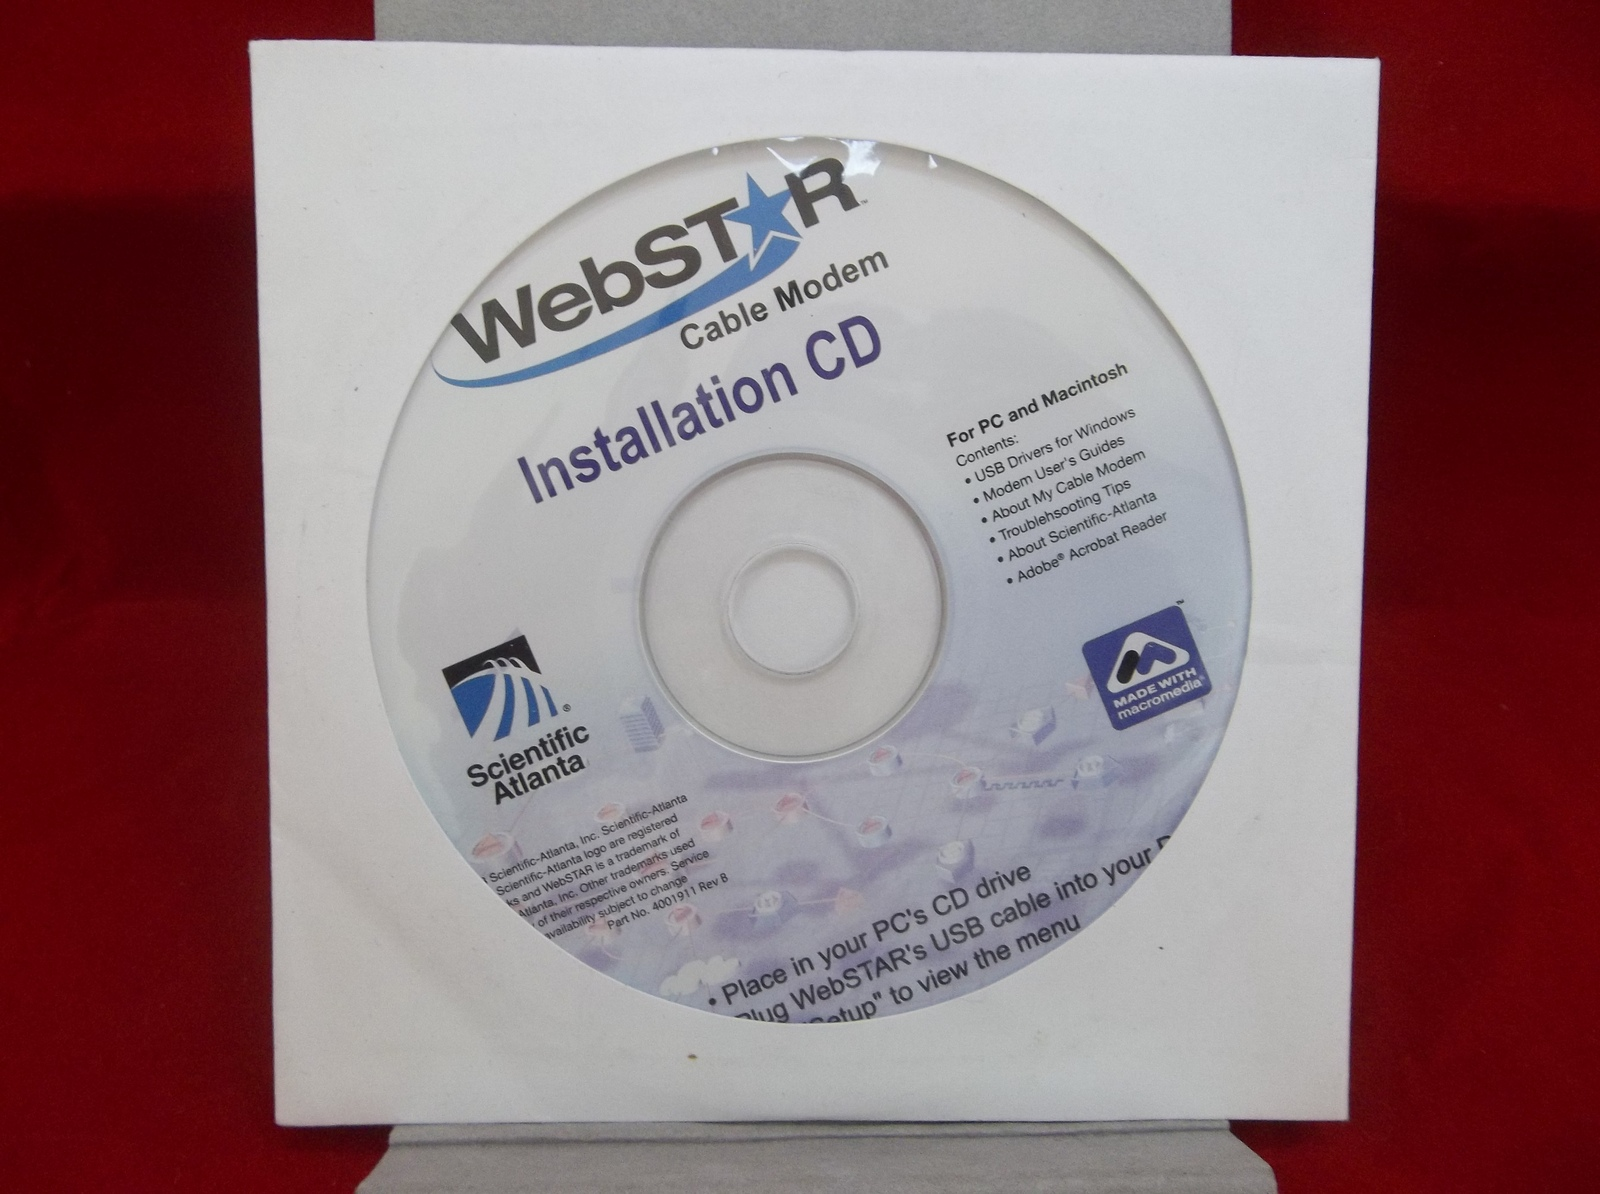 Webstar Cable Modem Installation Cd Disc And 50 Similar Items